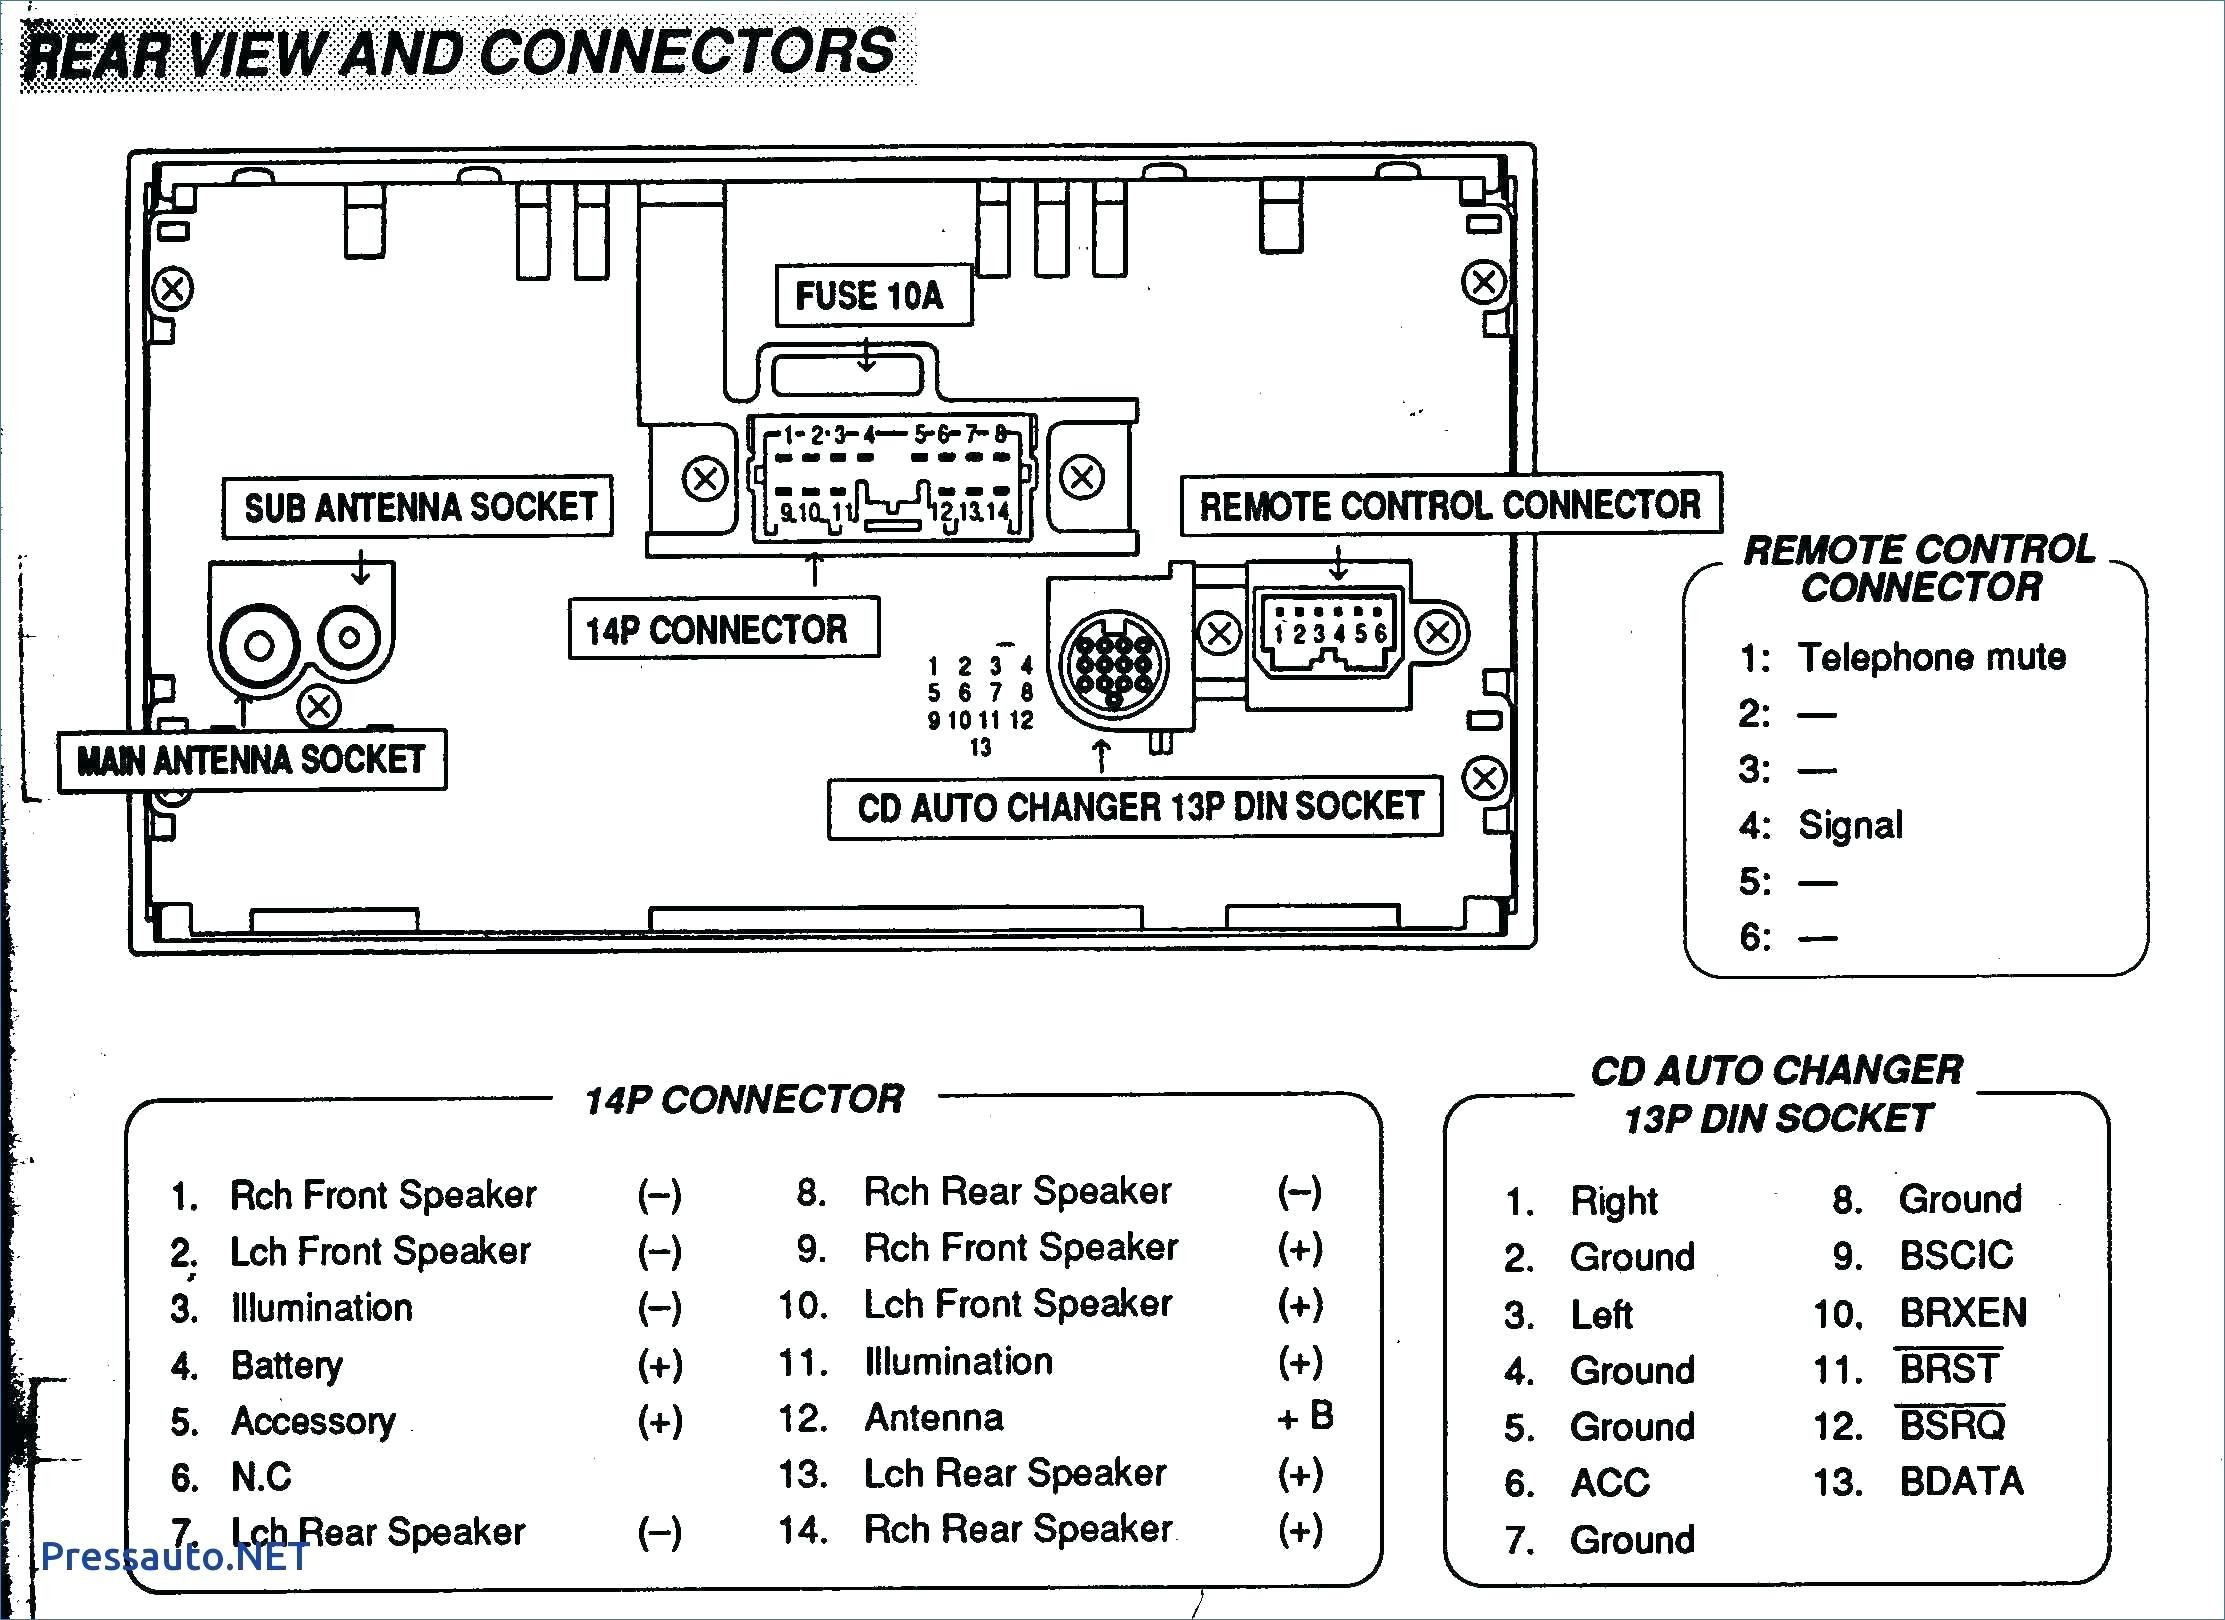 Car Audio System Diagram | My Wiring DIagram